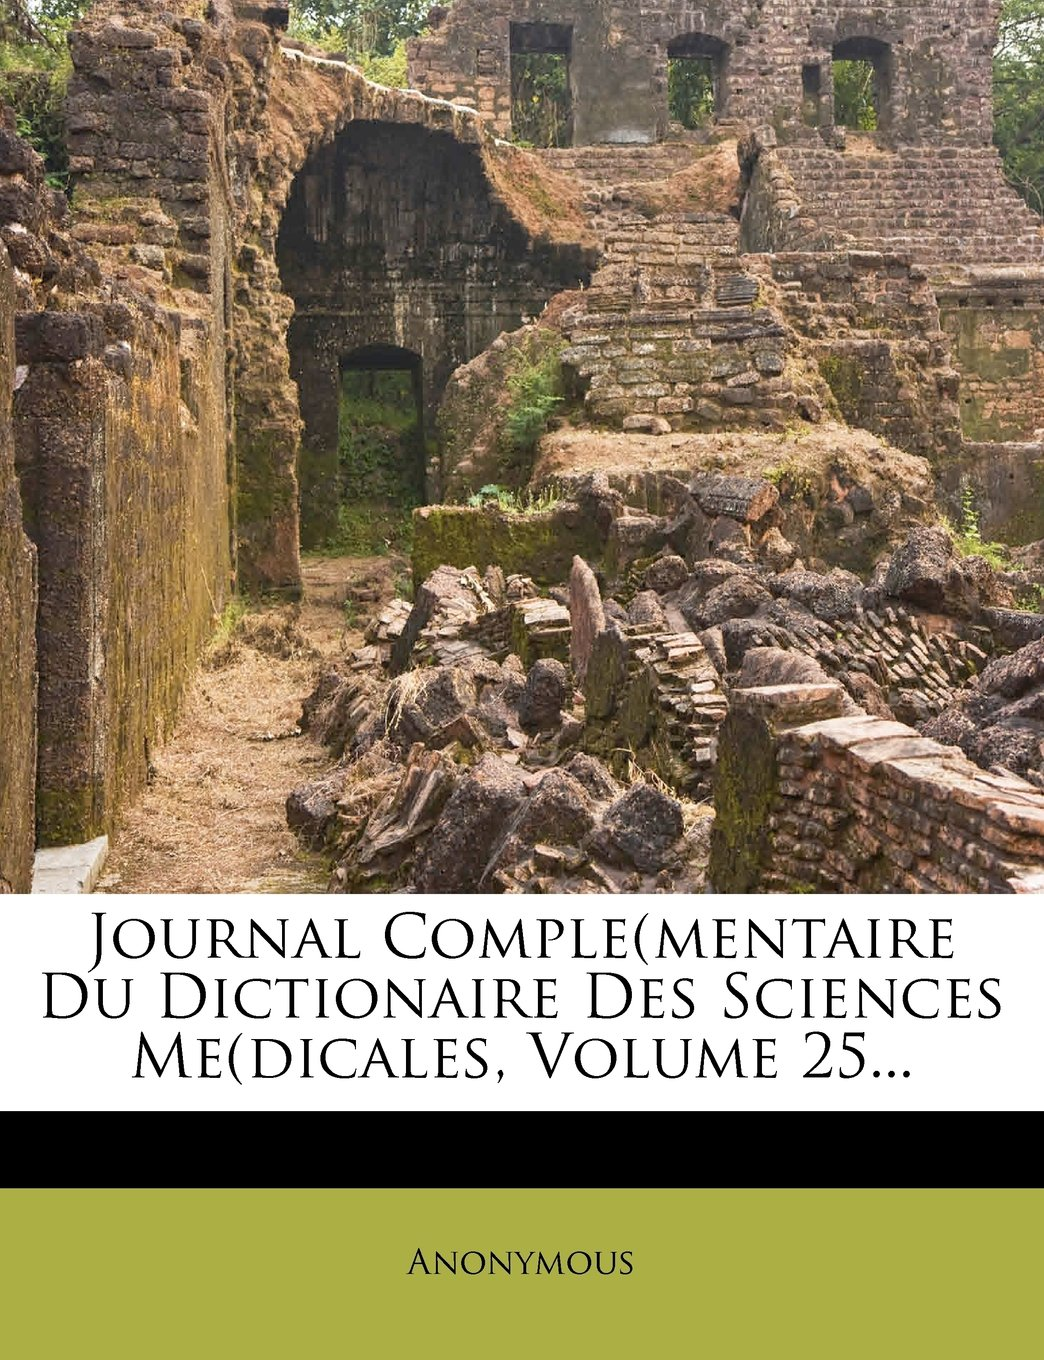 Read Online Journal Comple(mentaire Du Dictionaire Des Sciences Me(dicales, Volume 25... (French Edition) pdf